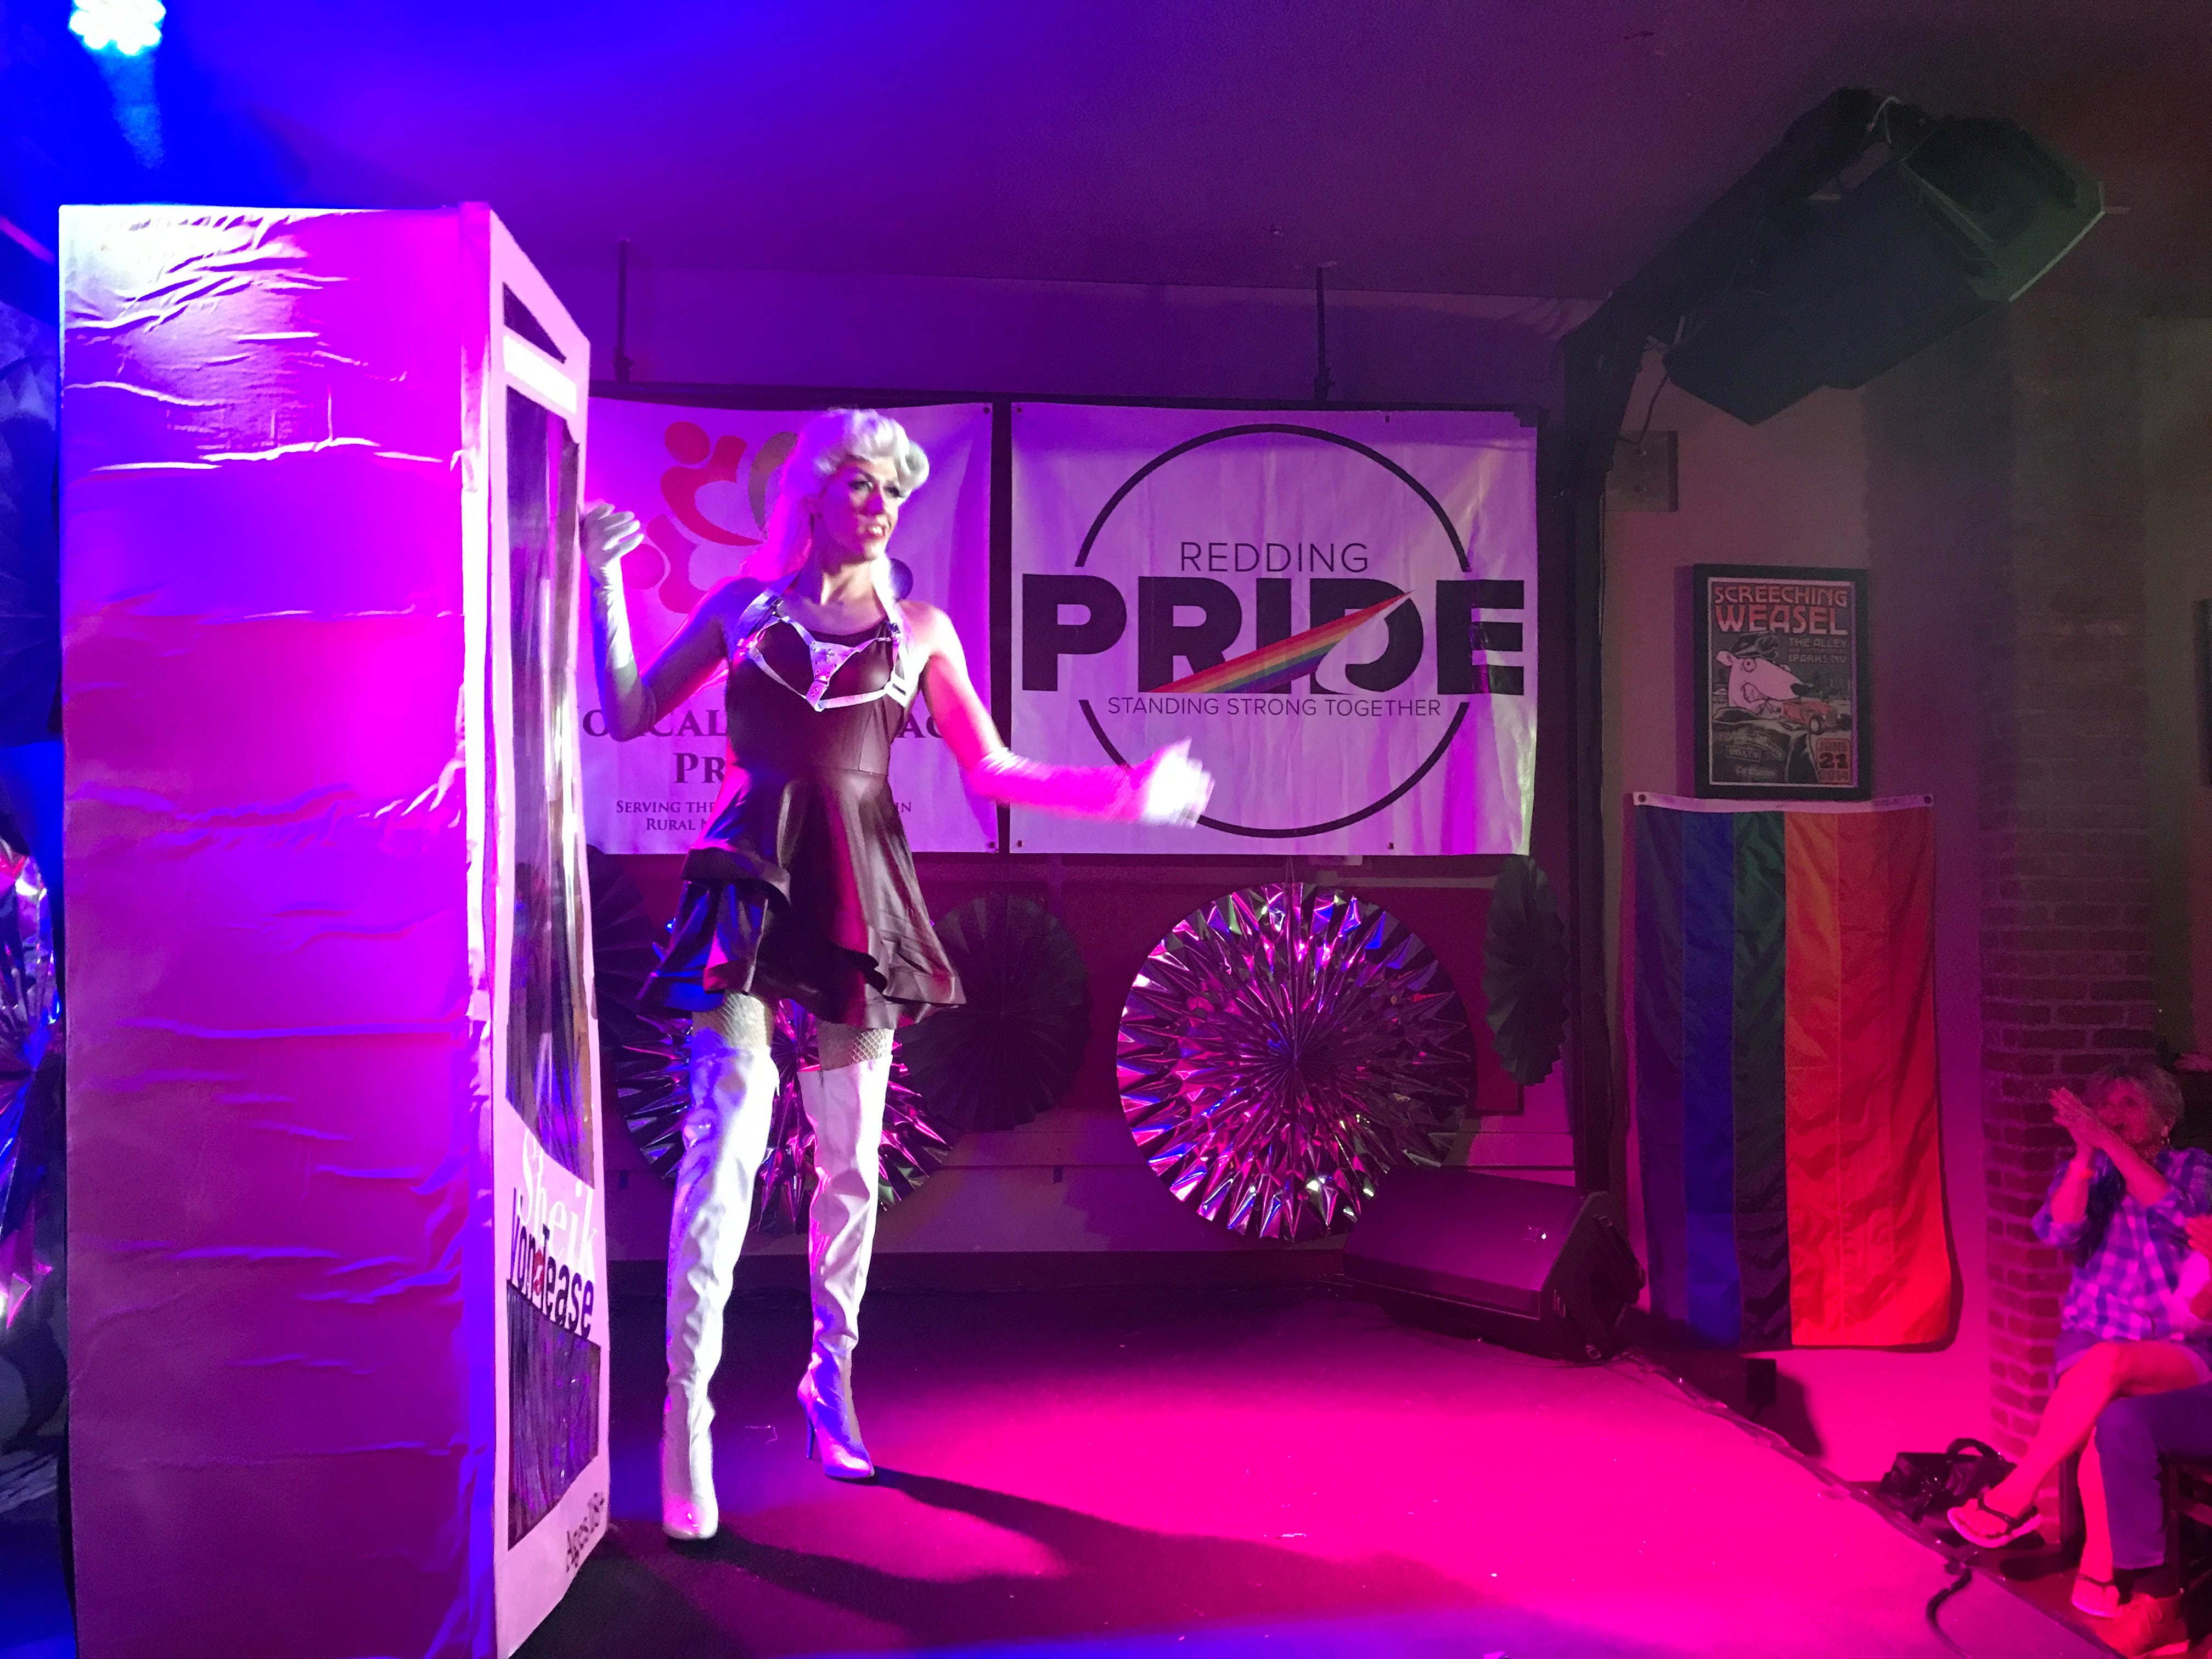 The Dip in Redding hosted a drag queen performance July 21, 2018.